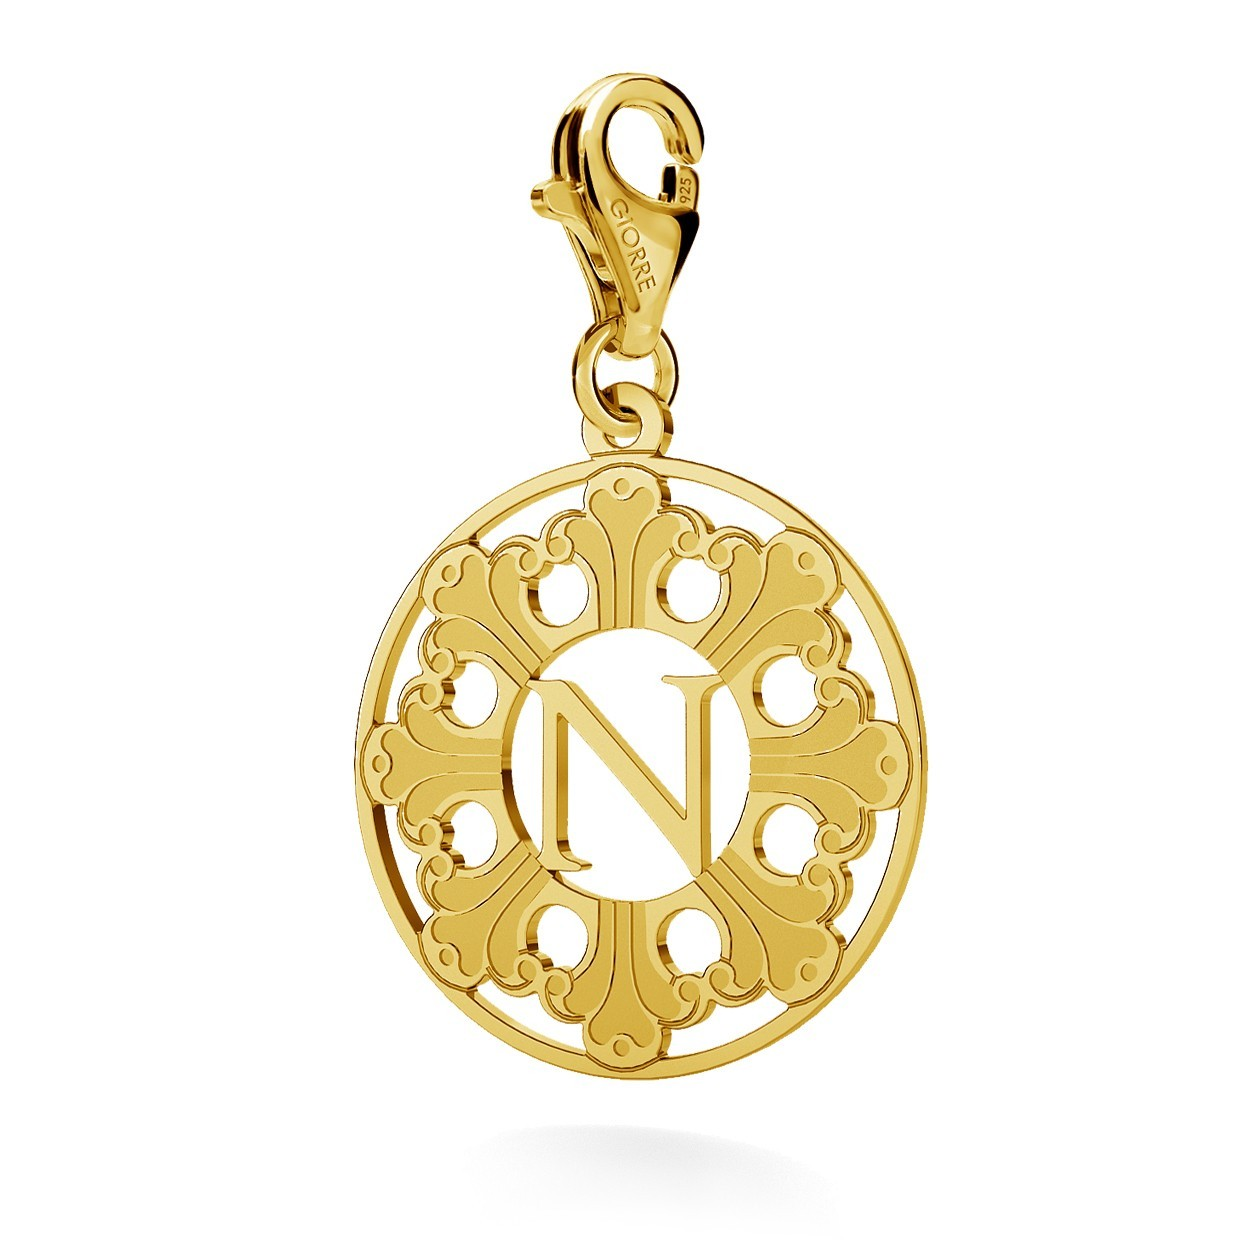 CHARM 146, GRENADE, STERLING SILVER (925) RHODIUM OR GOLD PLATED